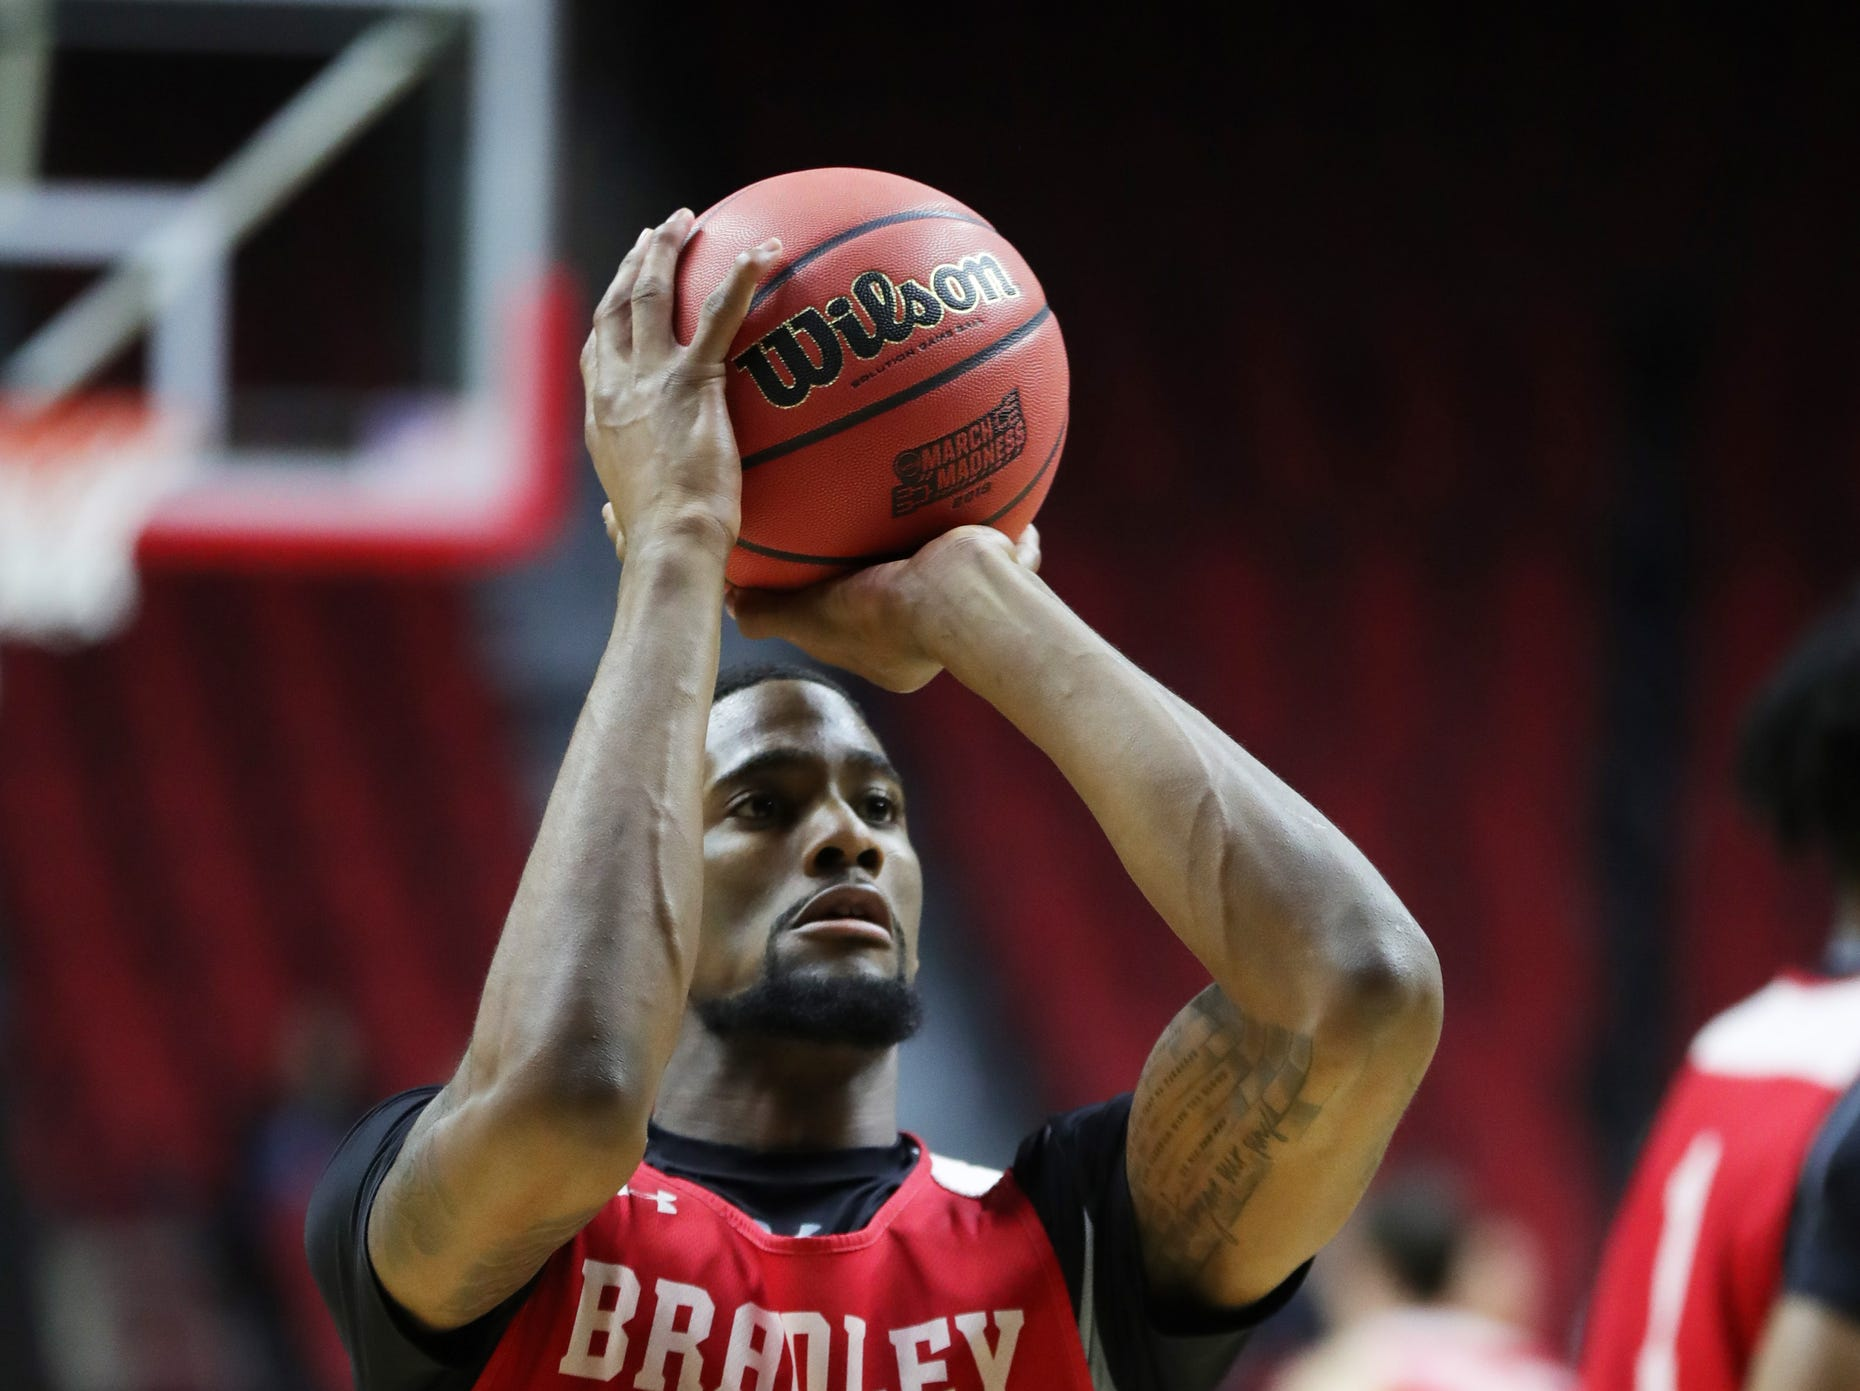 Bradley's Elijah Childs practices for the first-round NCAA tournament game against Michigan State on Wednesday, March 20, 2019 at Wells Fargo Arena in Des Moines, Iowa.